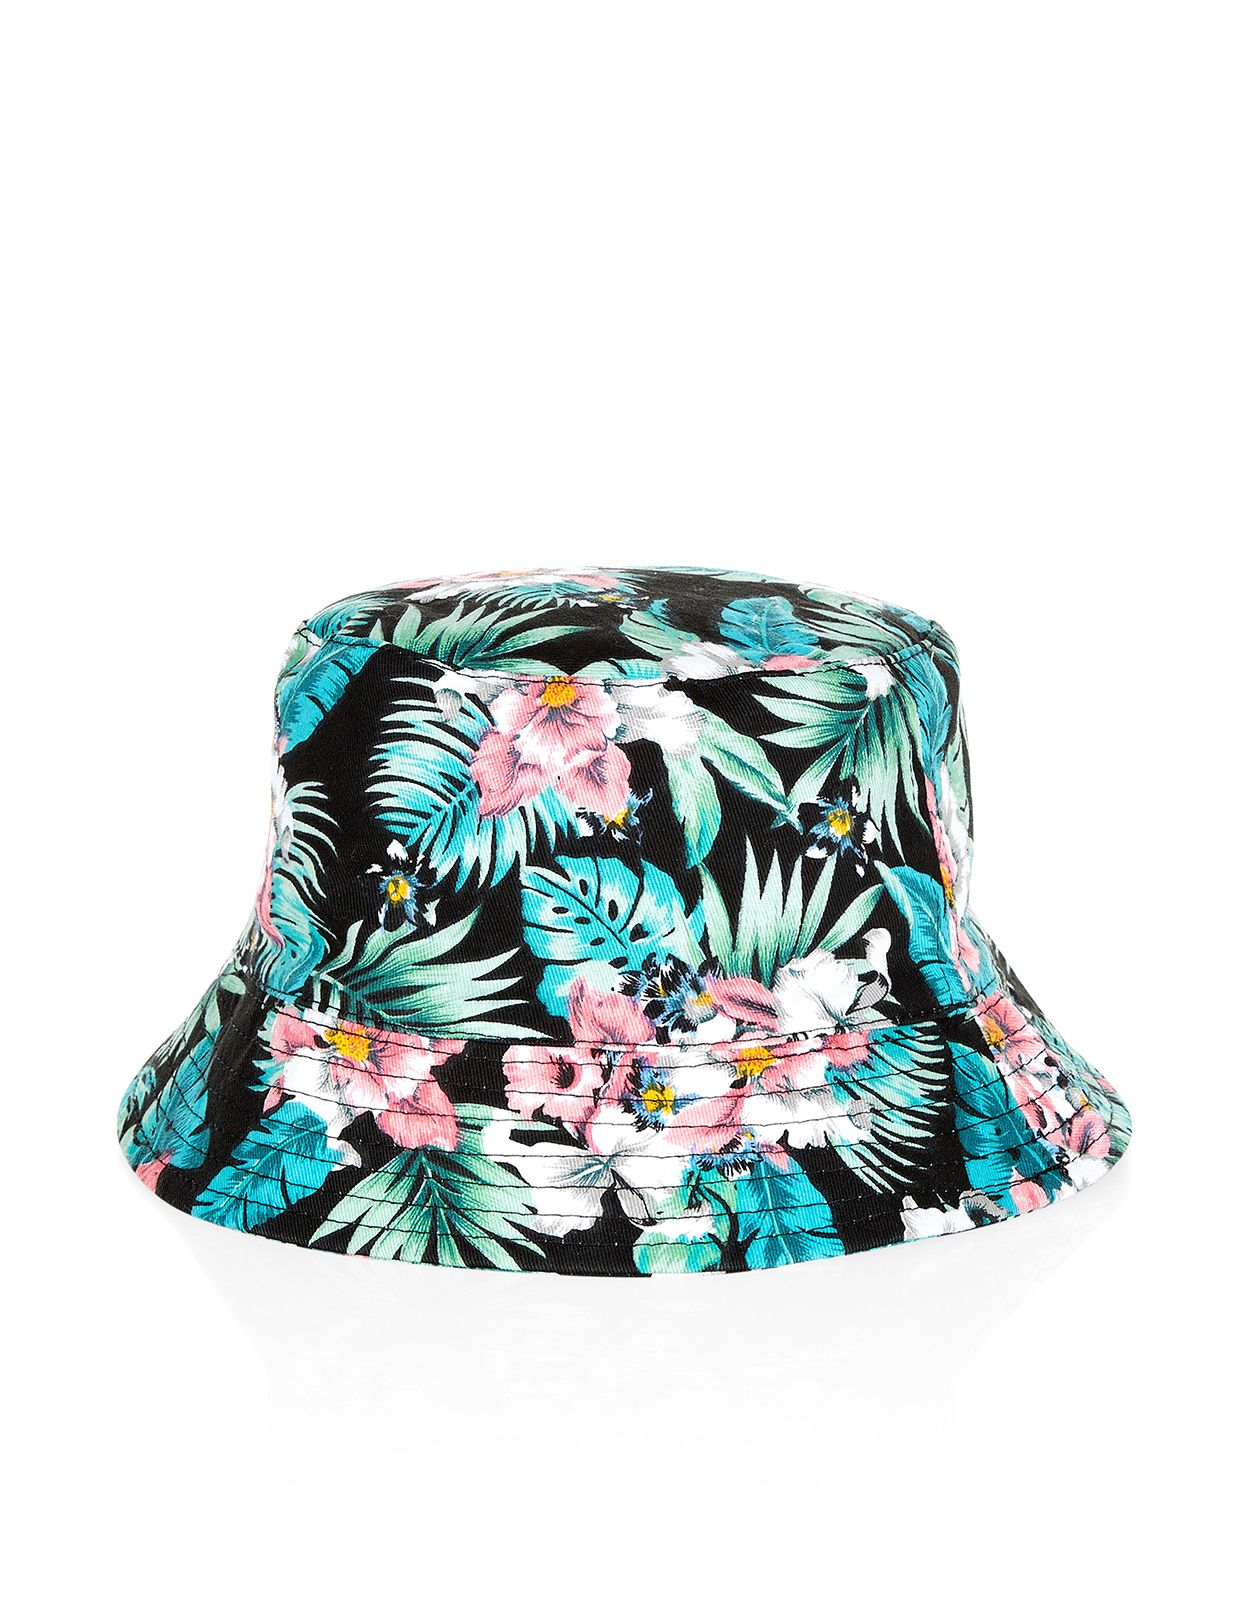 597307cf83af4 Tropical Floral Bucket Hat